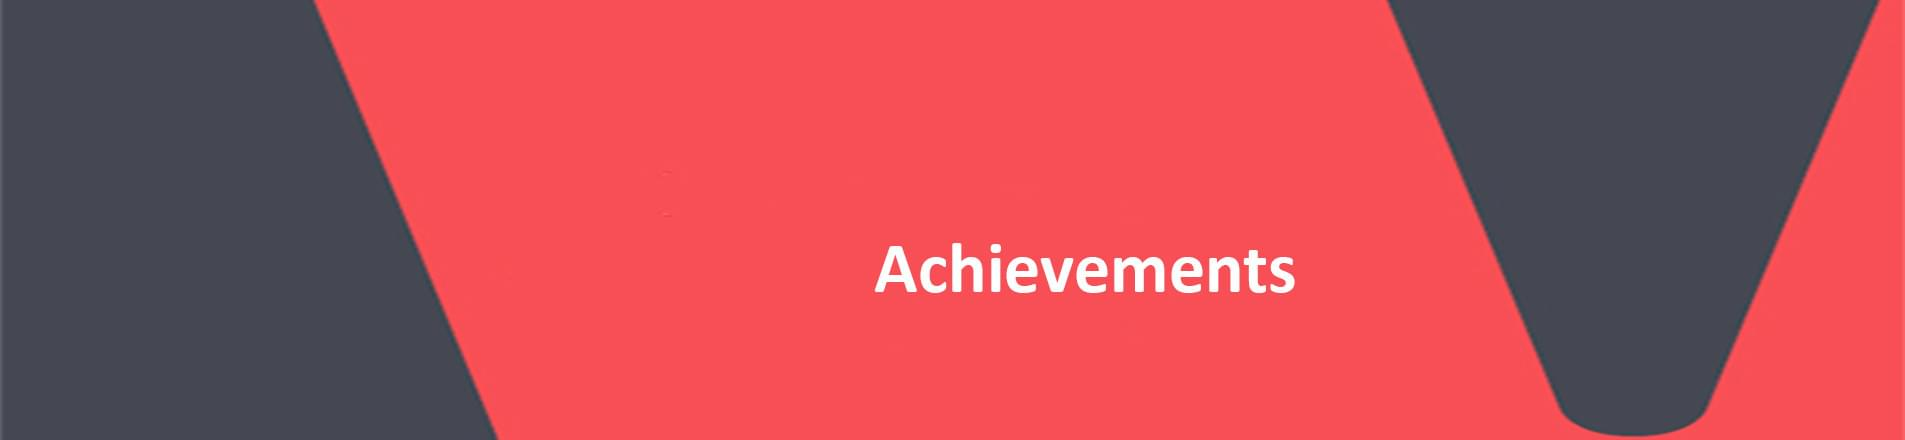 Red background with white text overlaid spelling Achievements.